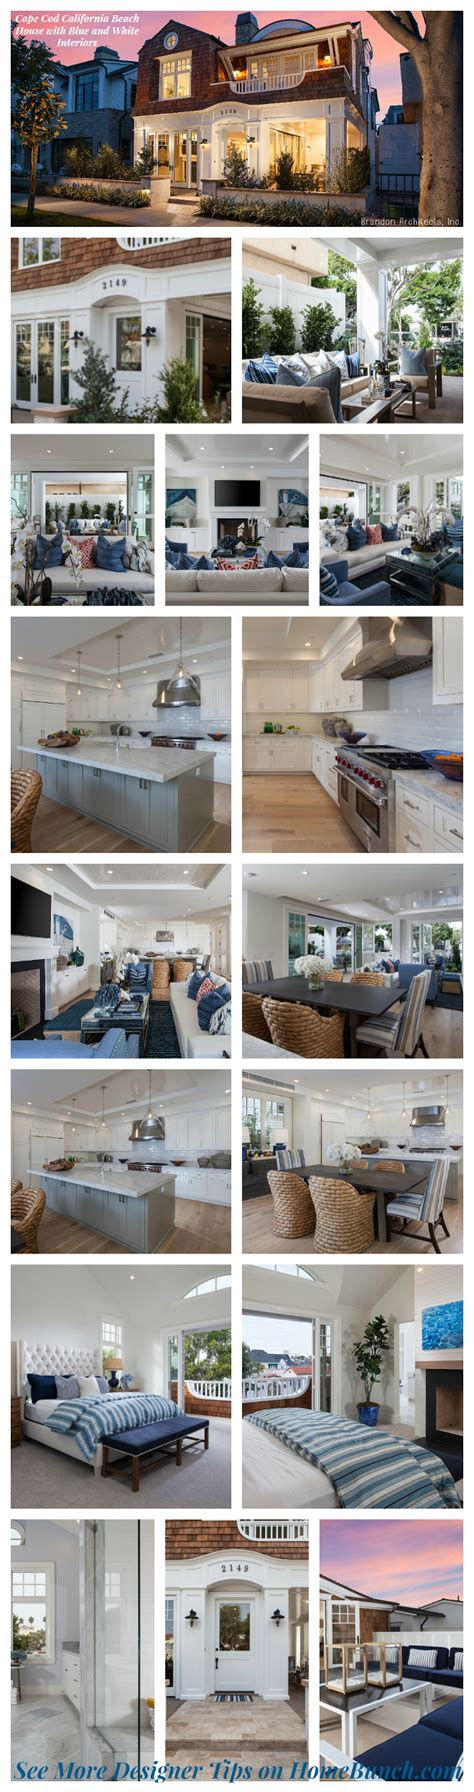 Cape Cod California House With Blue And White cape cod california house home bunch interior